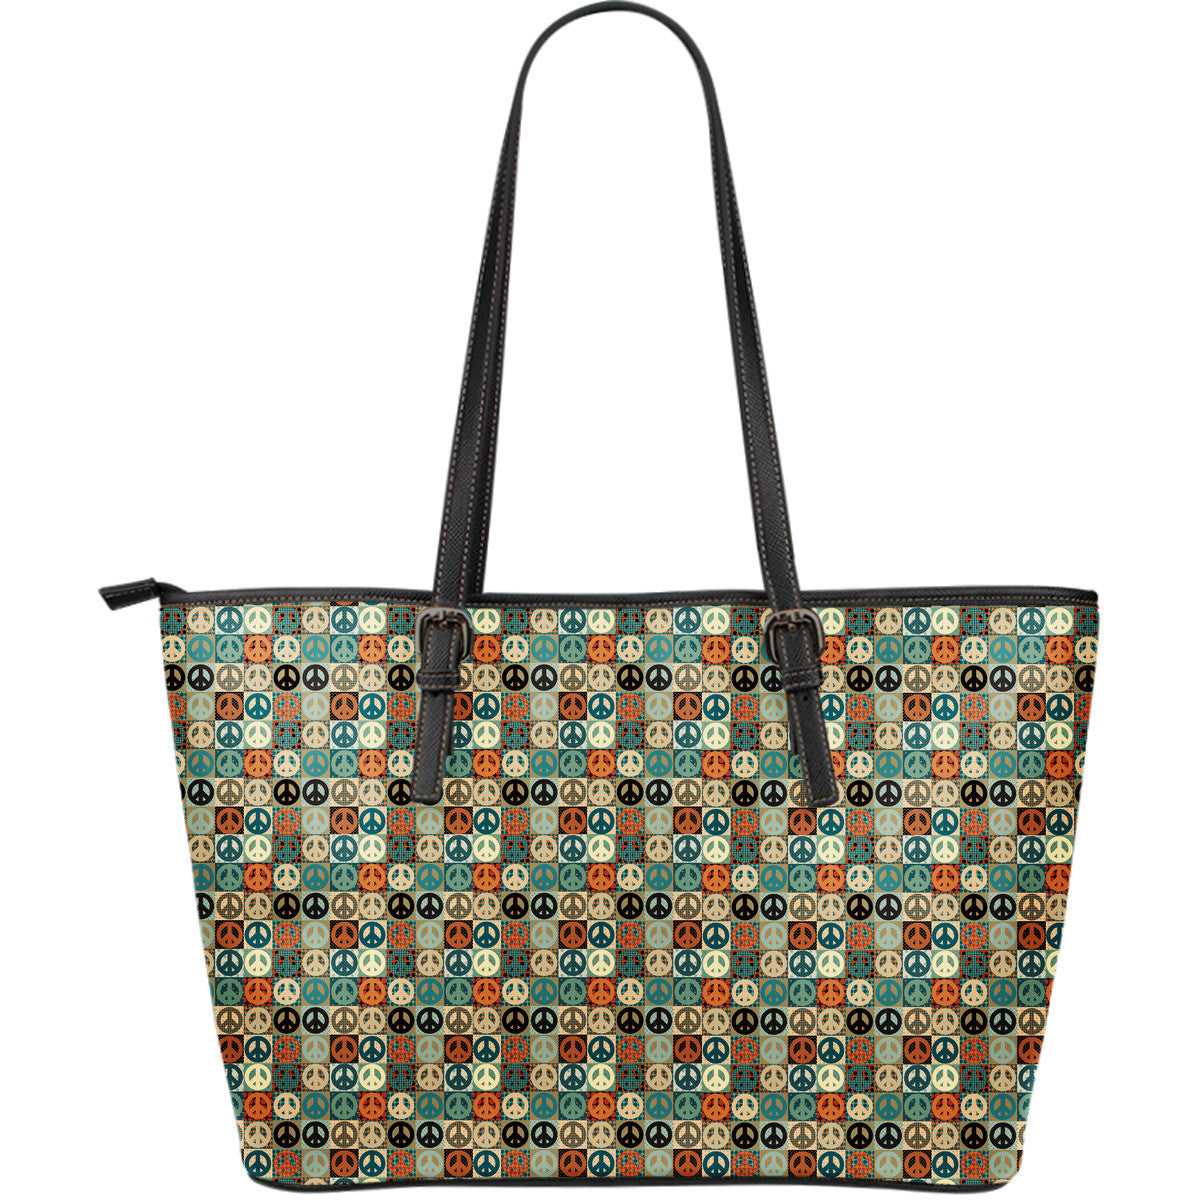 Peace Large Leather Tote Bag